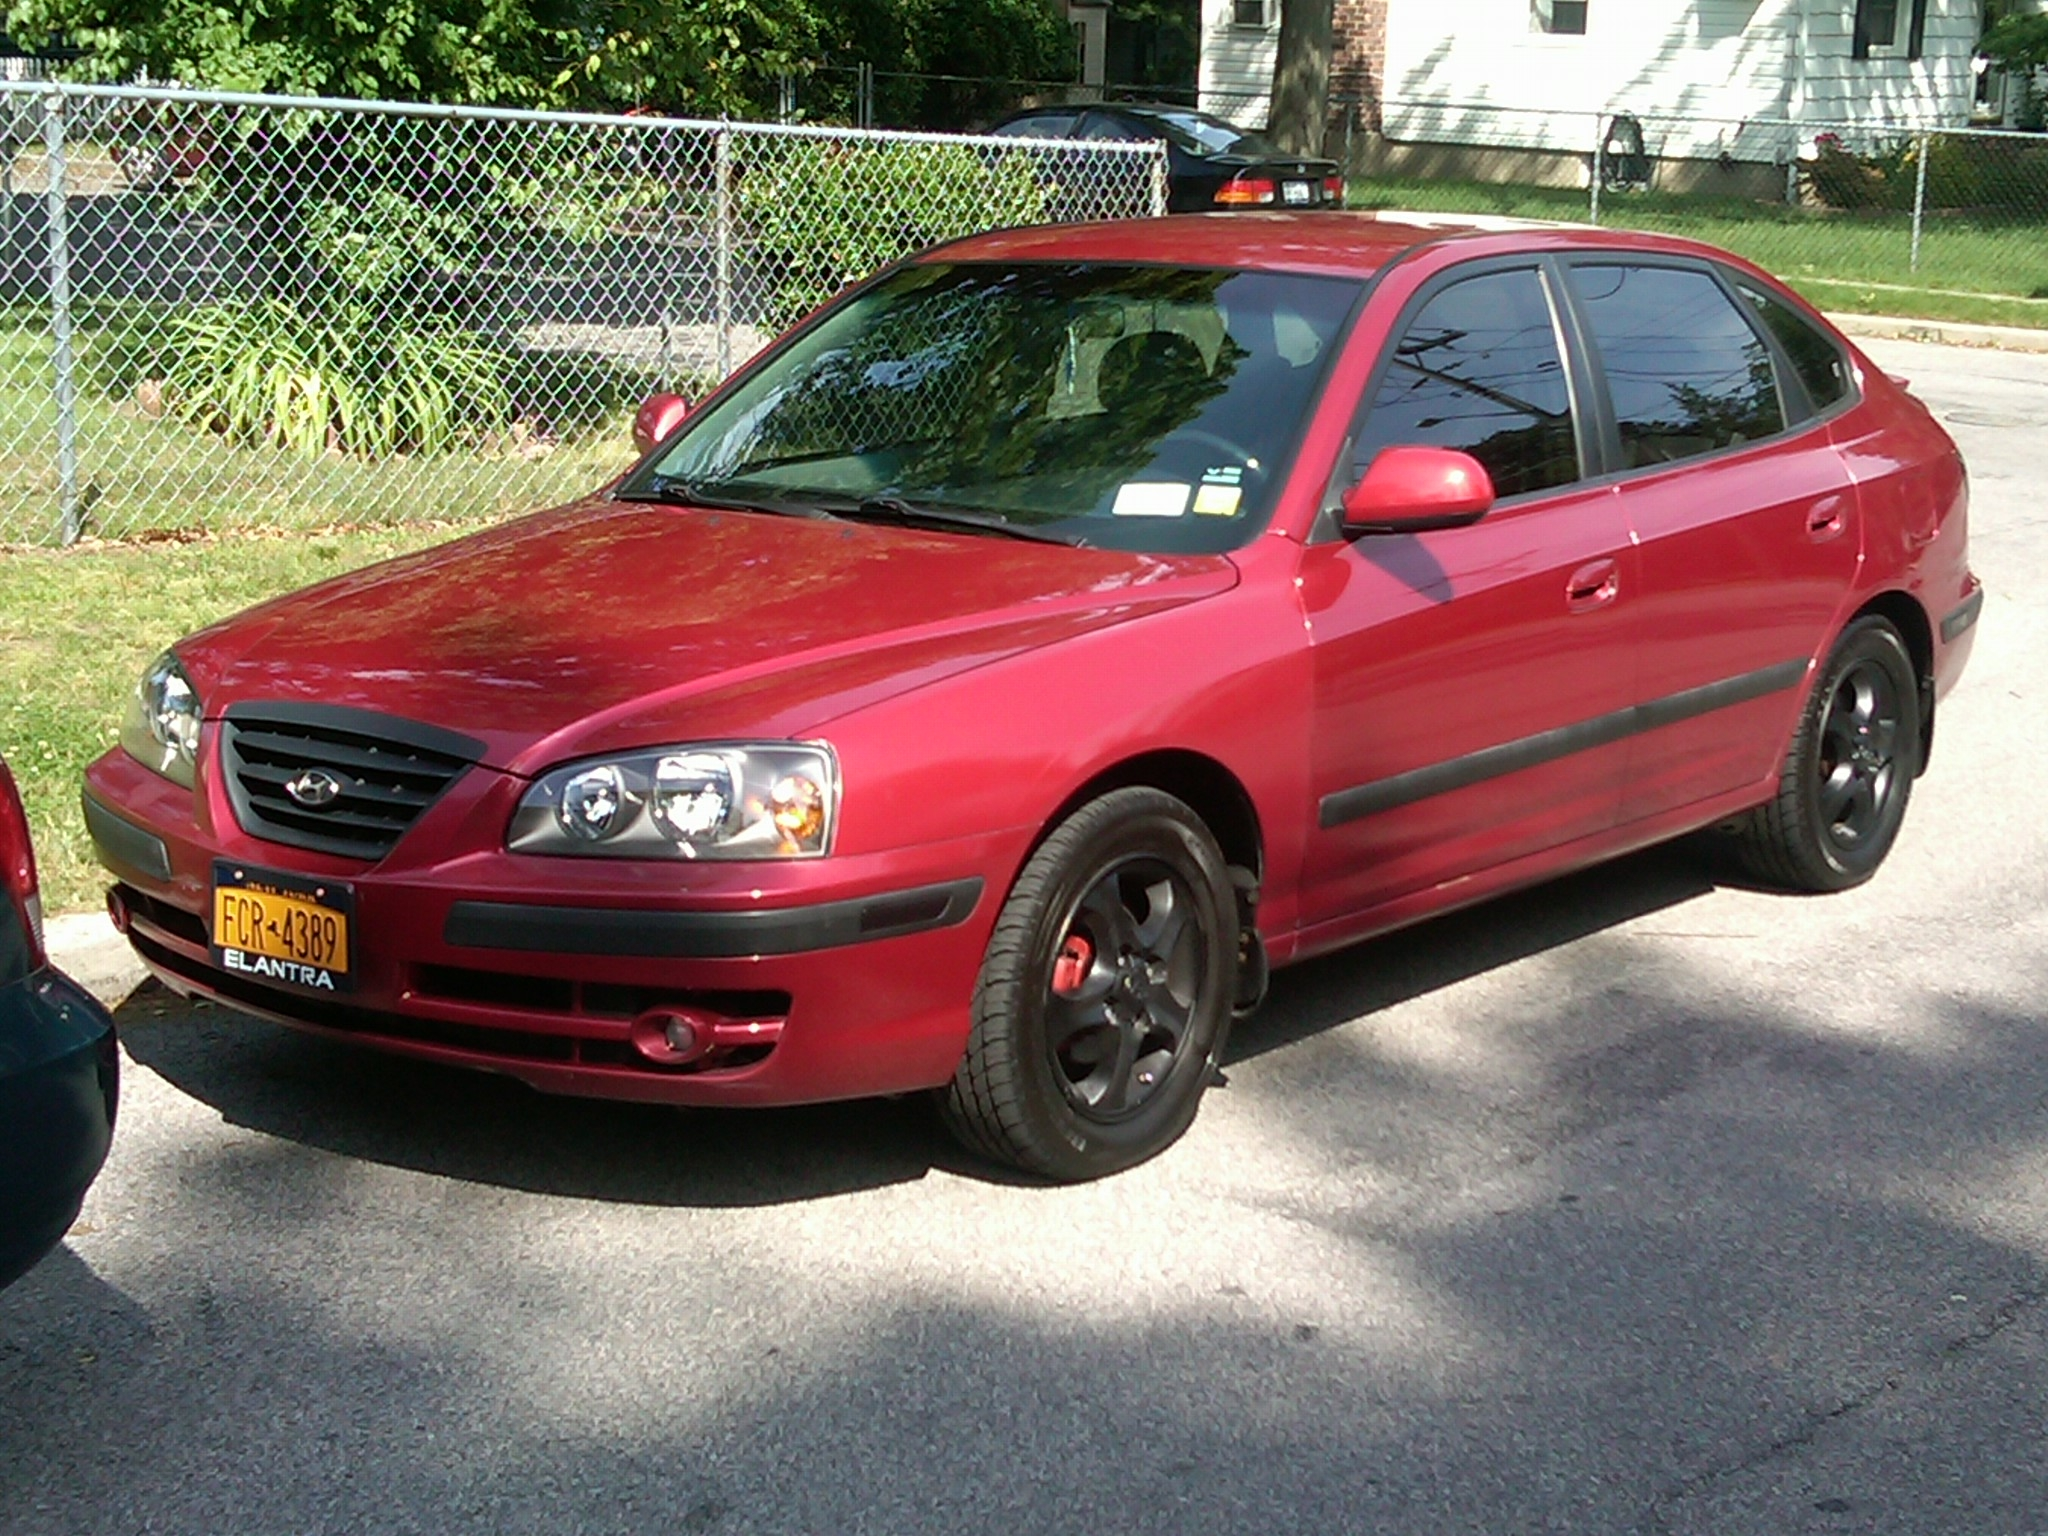 2001 hyundai elantra iii hatchback pictures information and specs auto. Black Bedroom Furniture Sets. Home Design Ideas